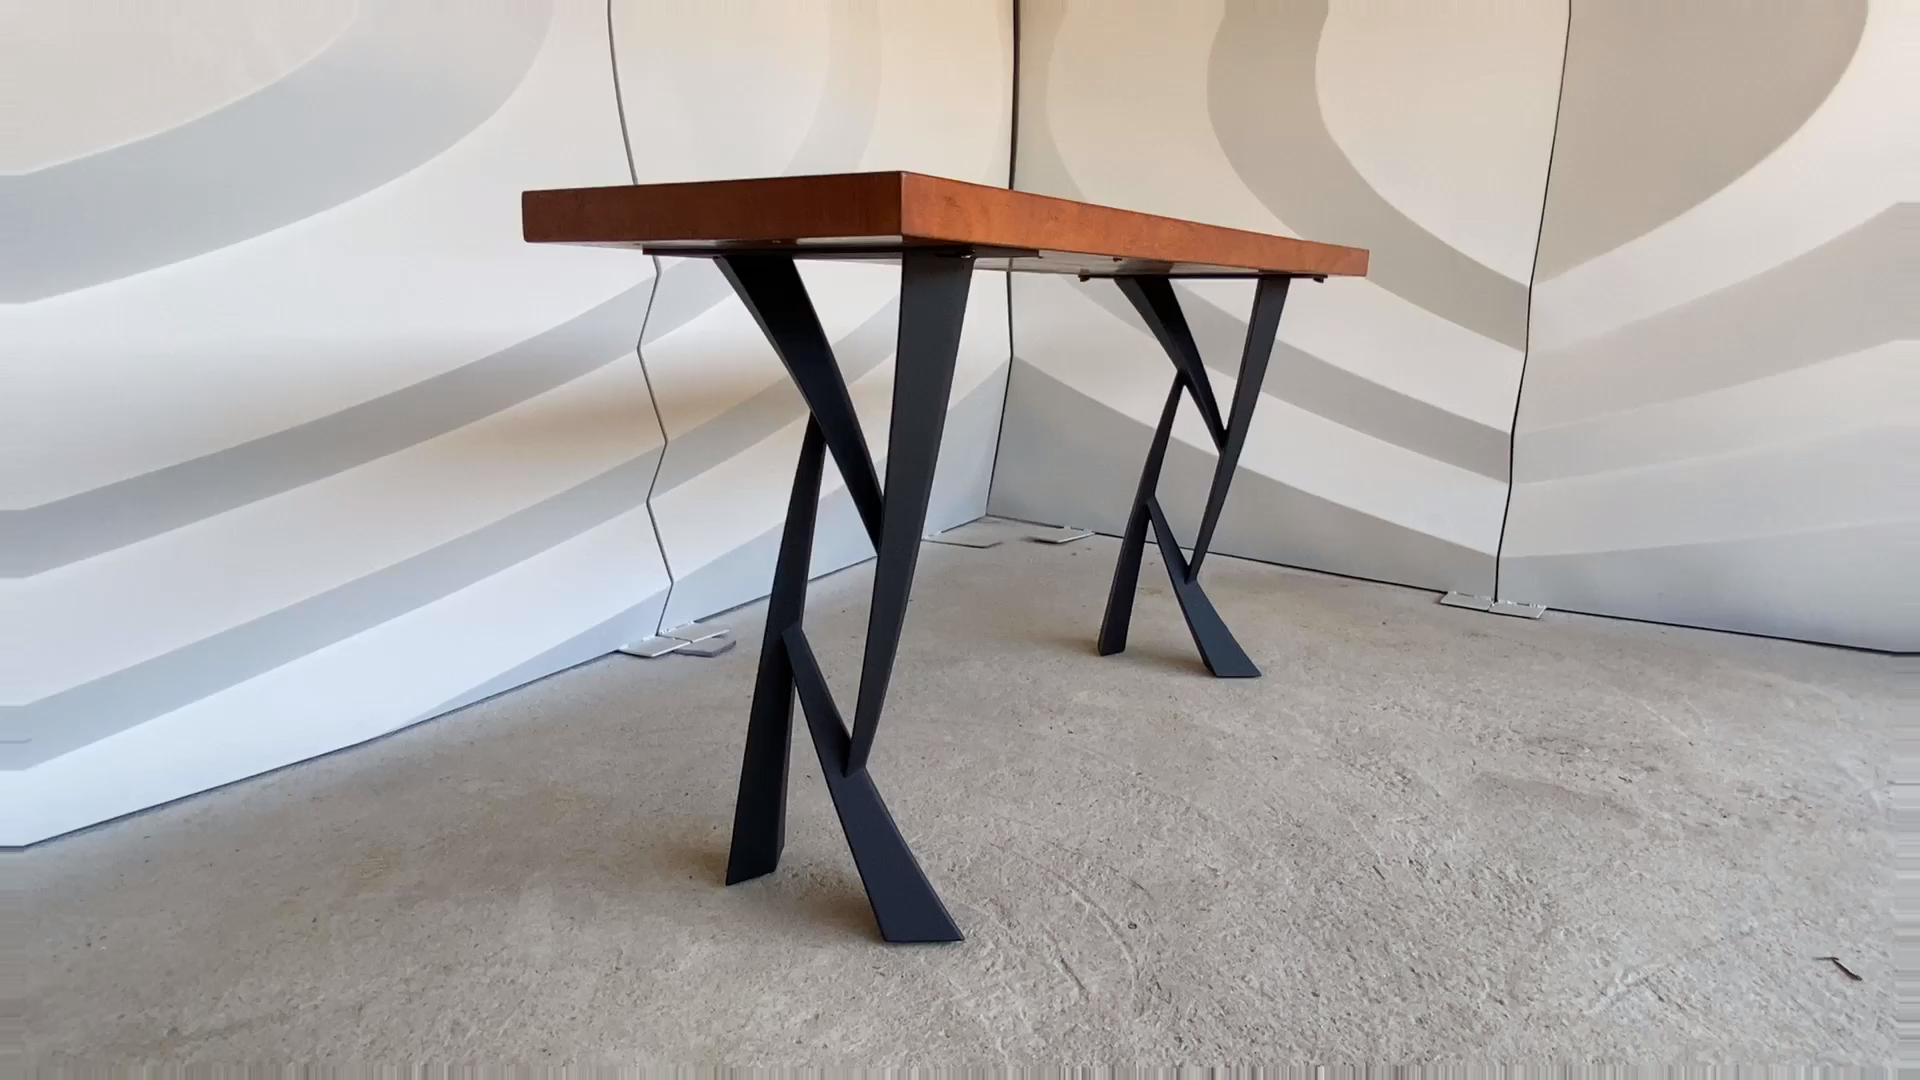 Metal Table Legs & furniture Base for Live Edge Top, River Table, Dining Table, Epoxy Resin Table#base #dining #edge #epoxy #furniture #legs #live #metal #resin #river #table #top